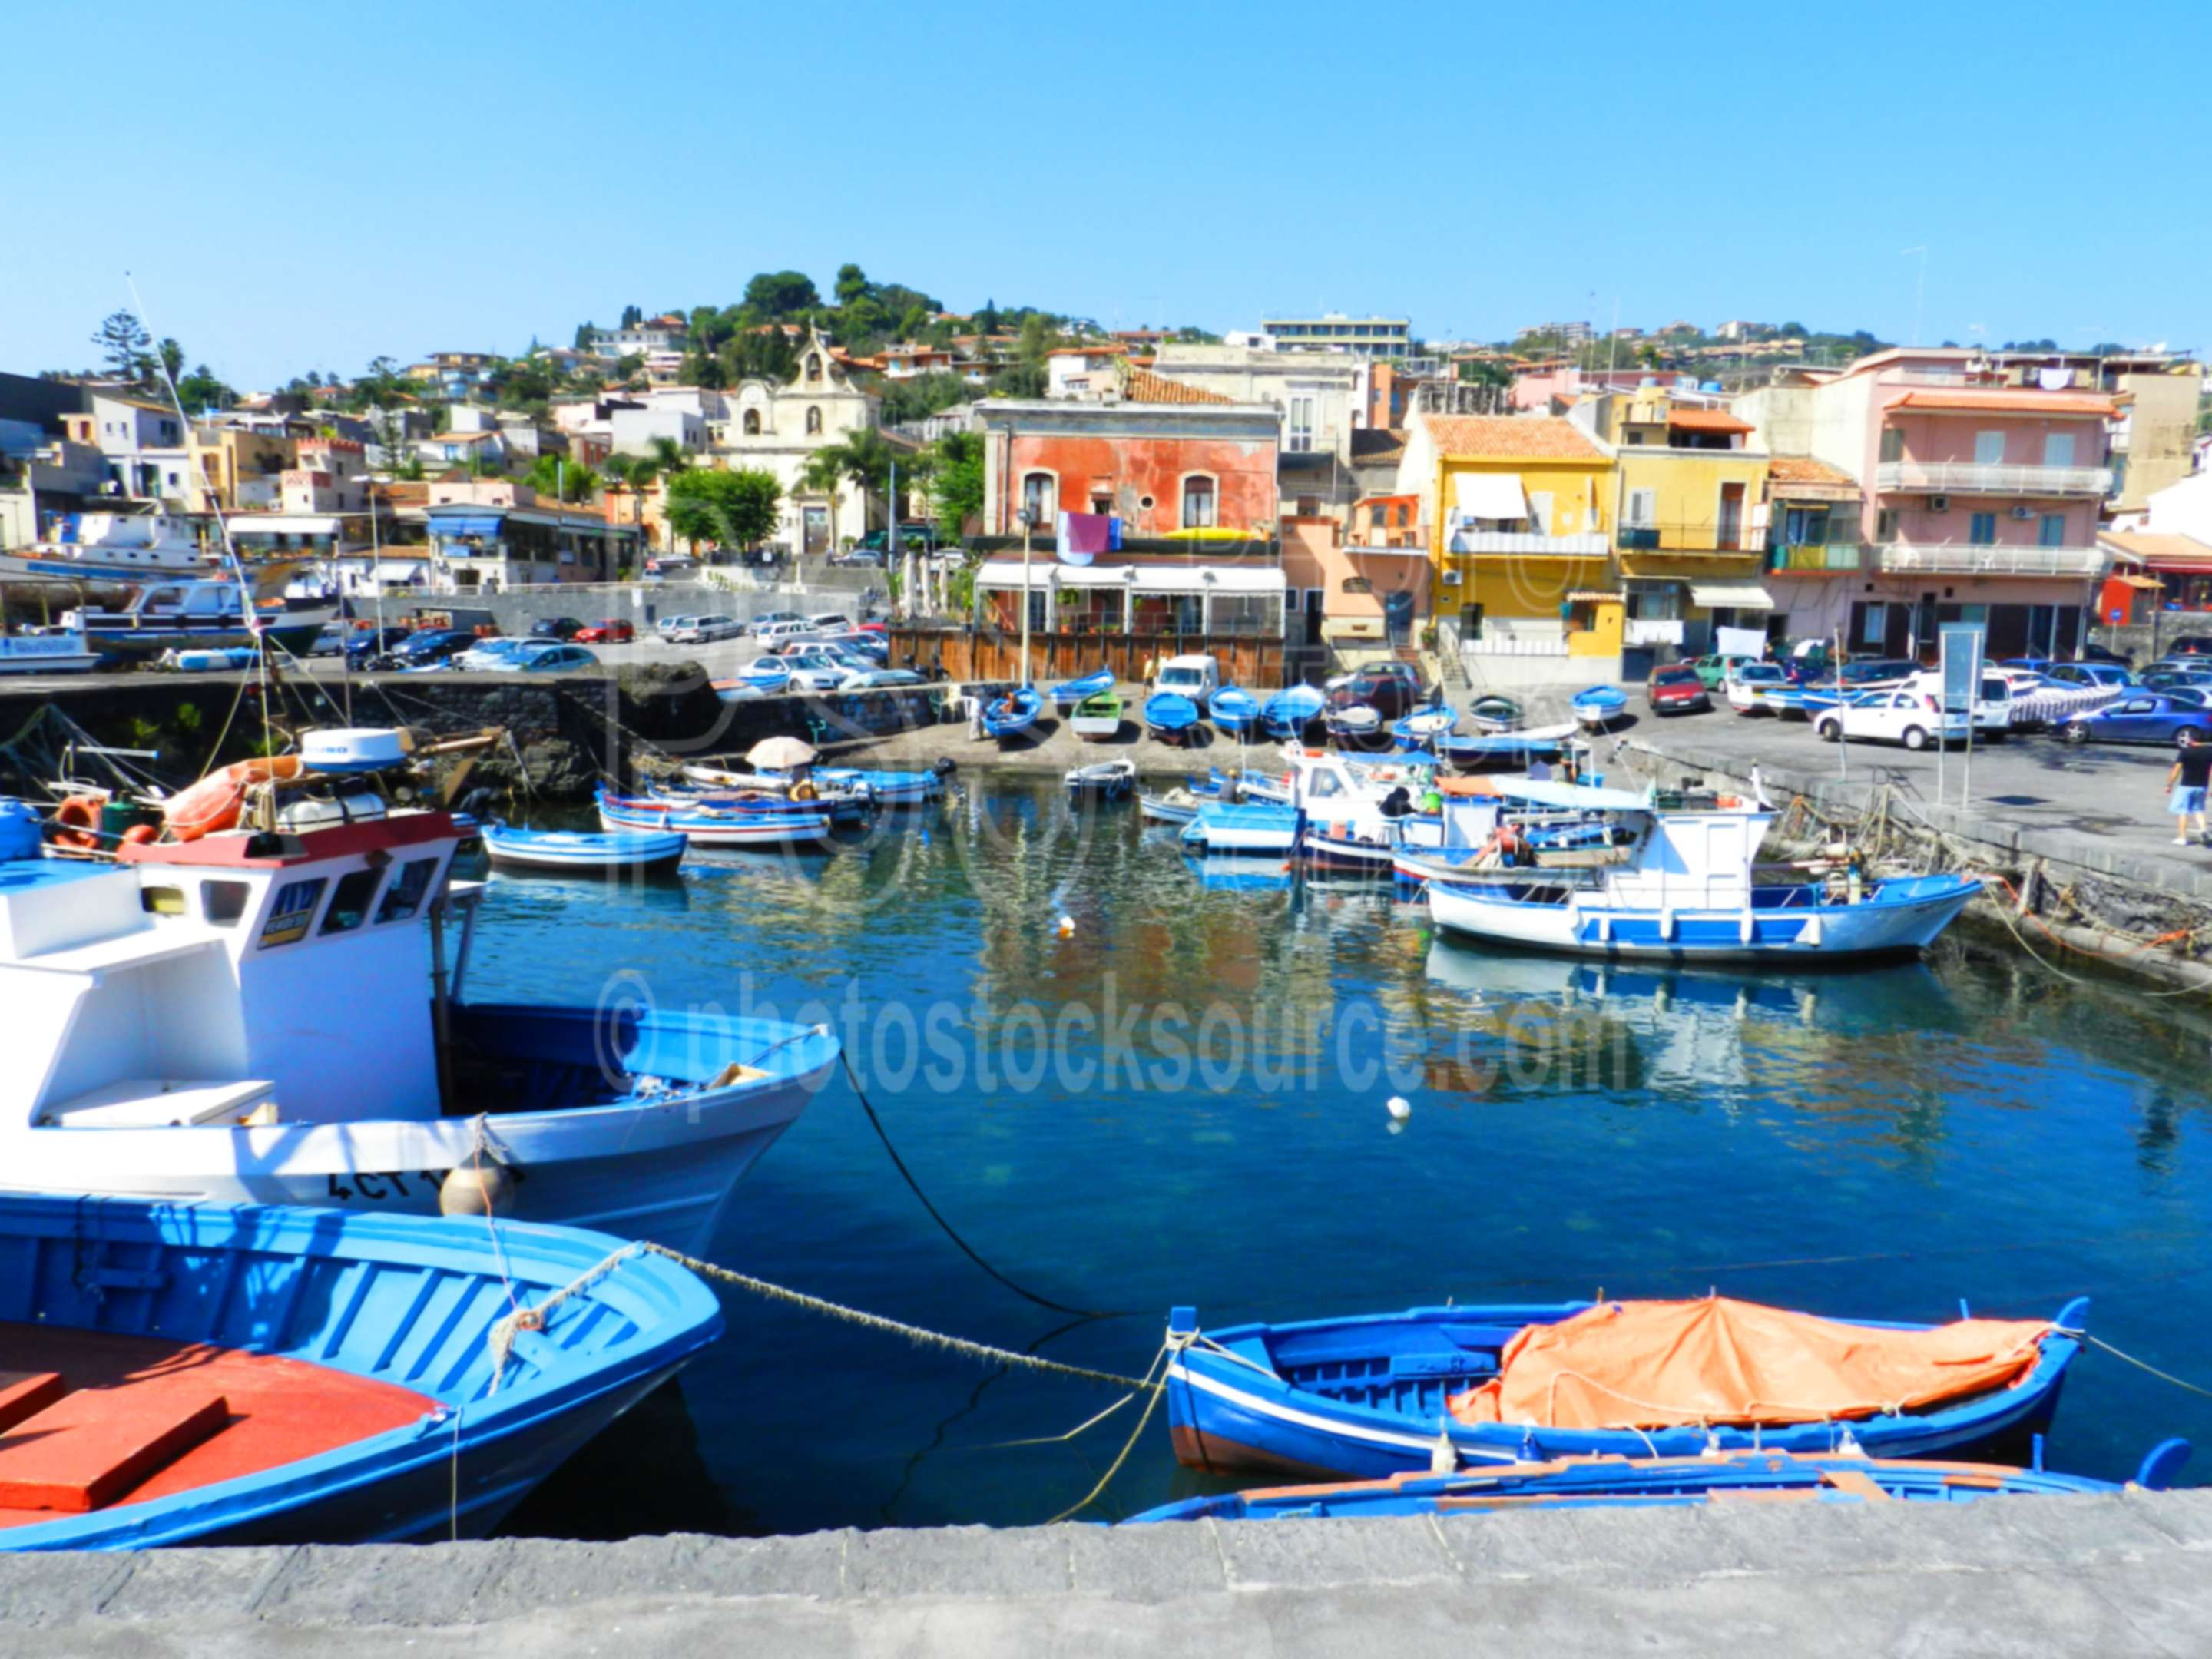 Boats in Acitrezza Harbor,harbor,fishing,boat,bay,waterfront